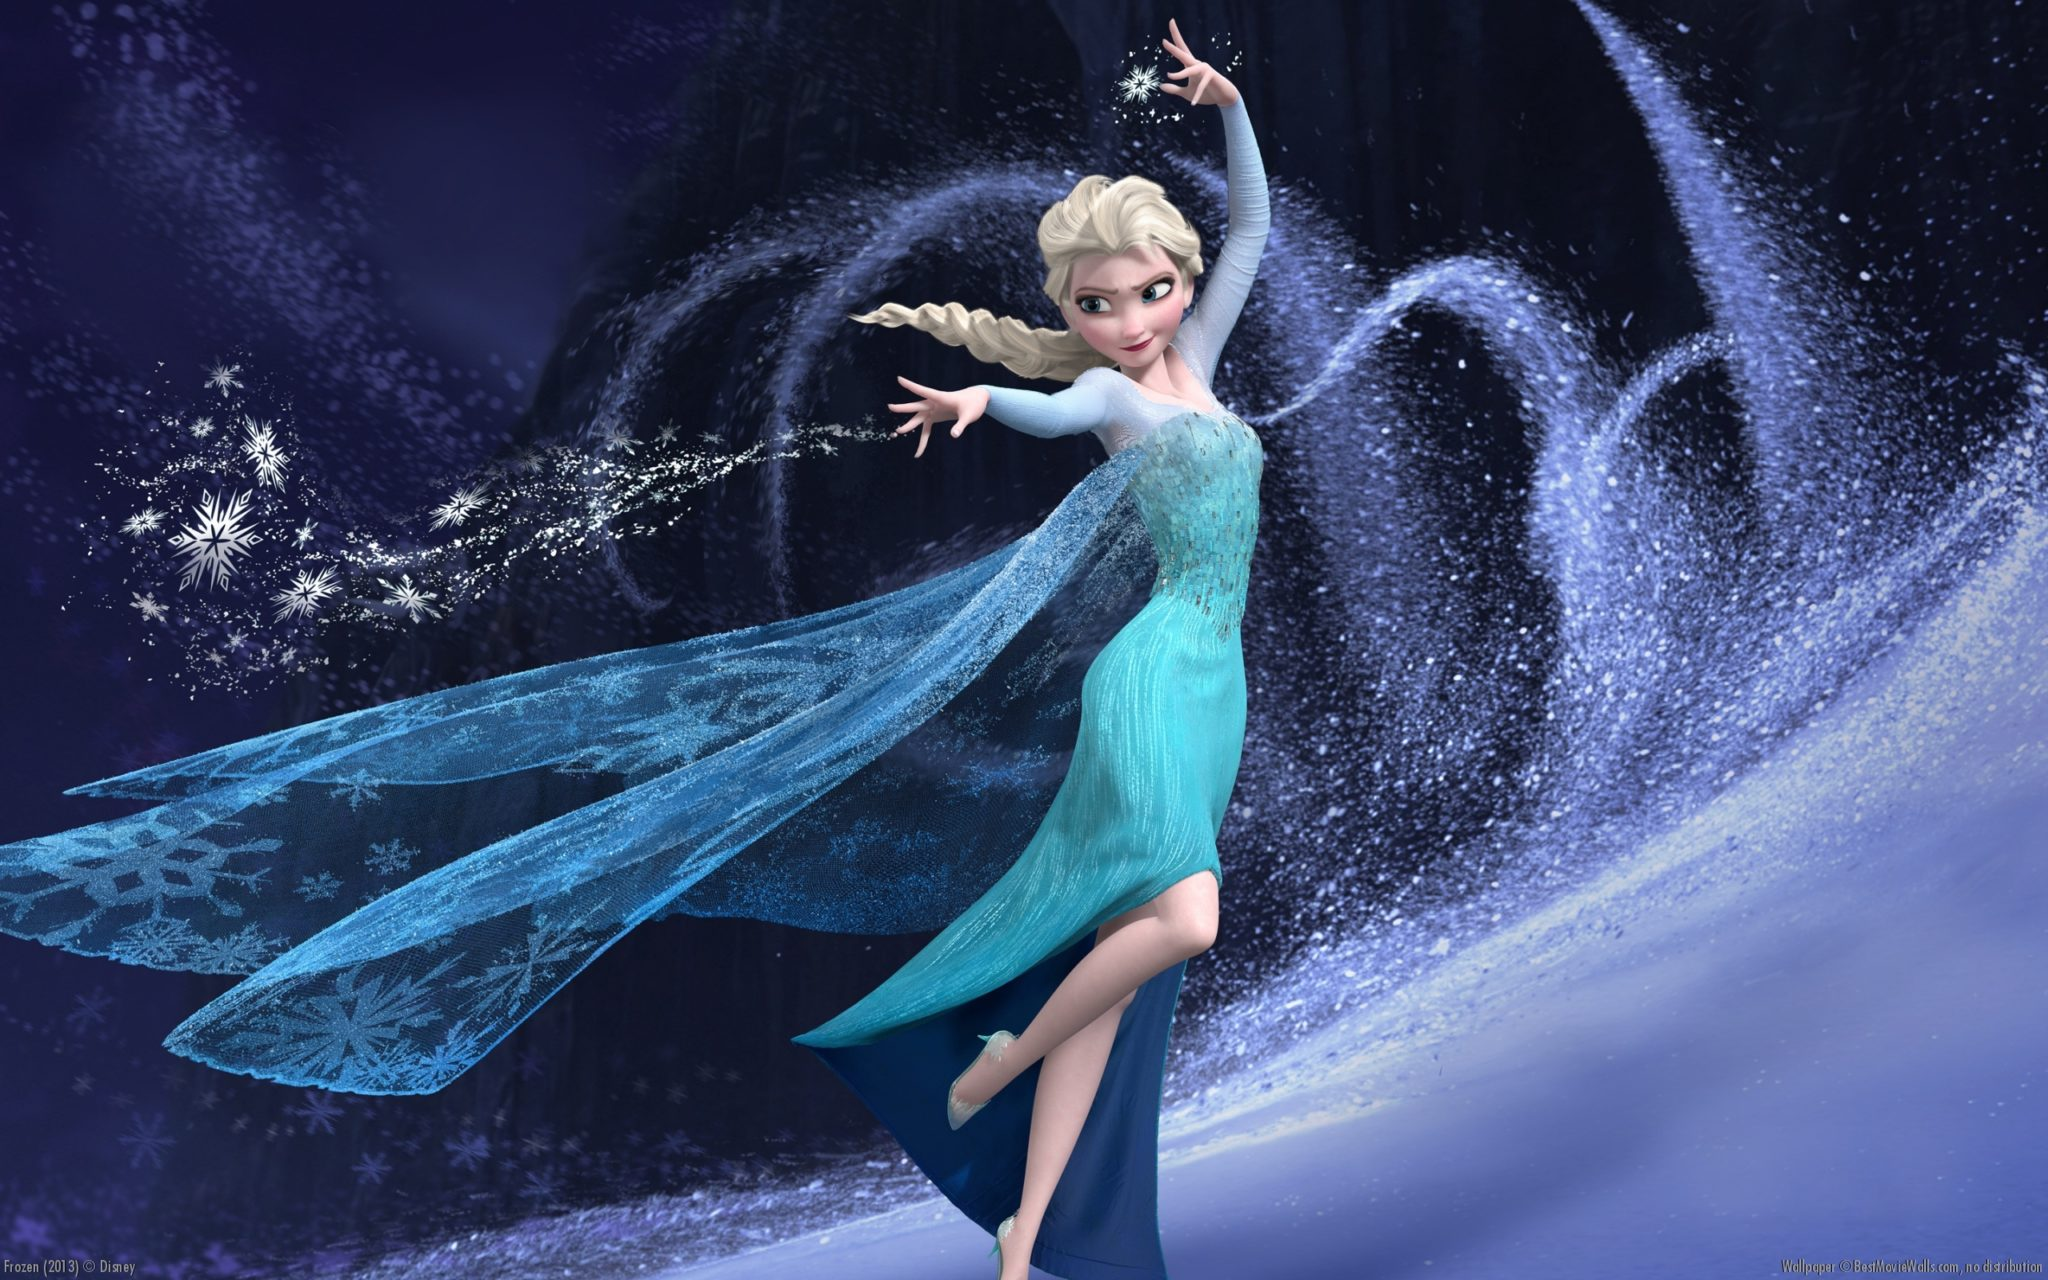 the most amazing & best 'frozen' wallpapers on the web | rotoscopers